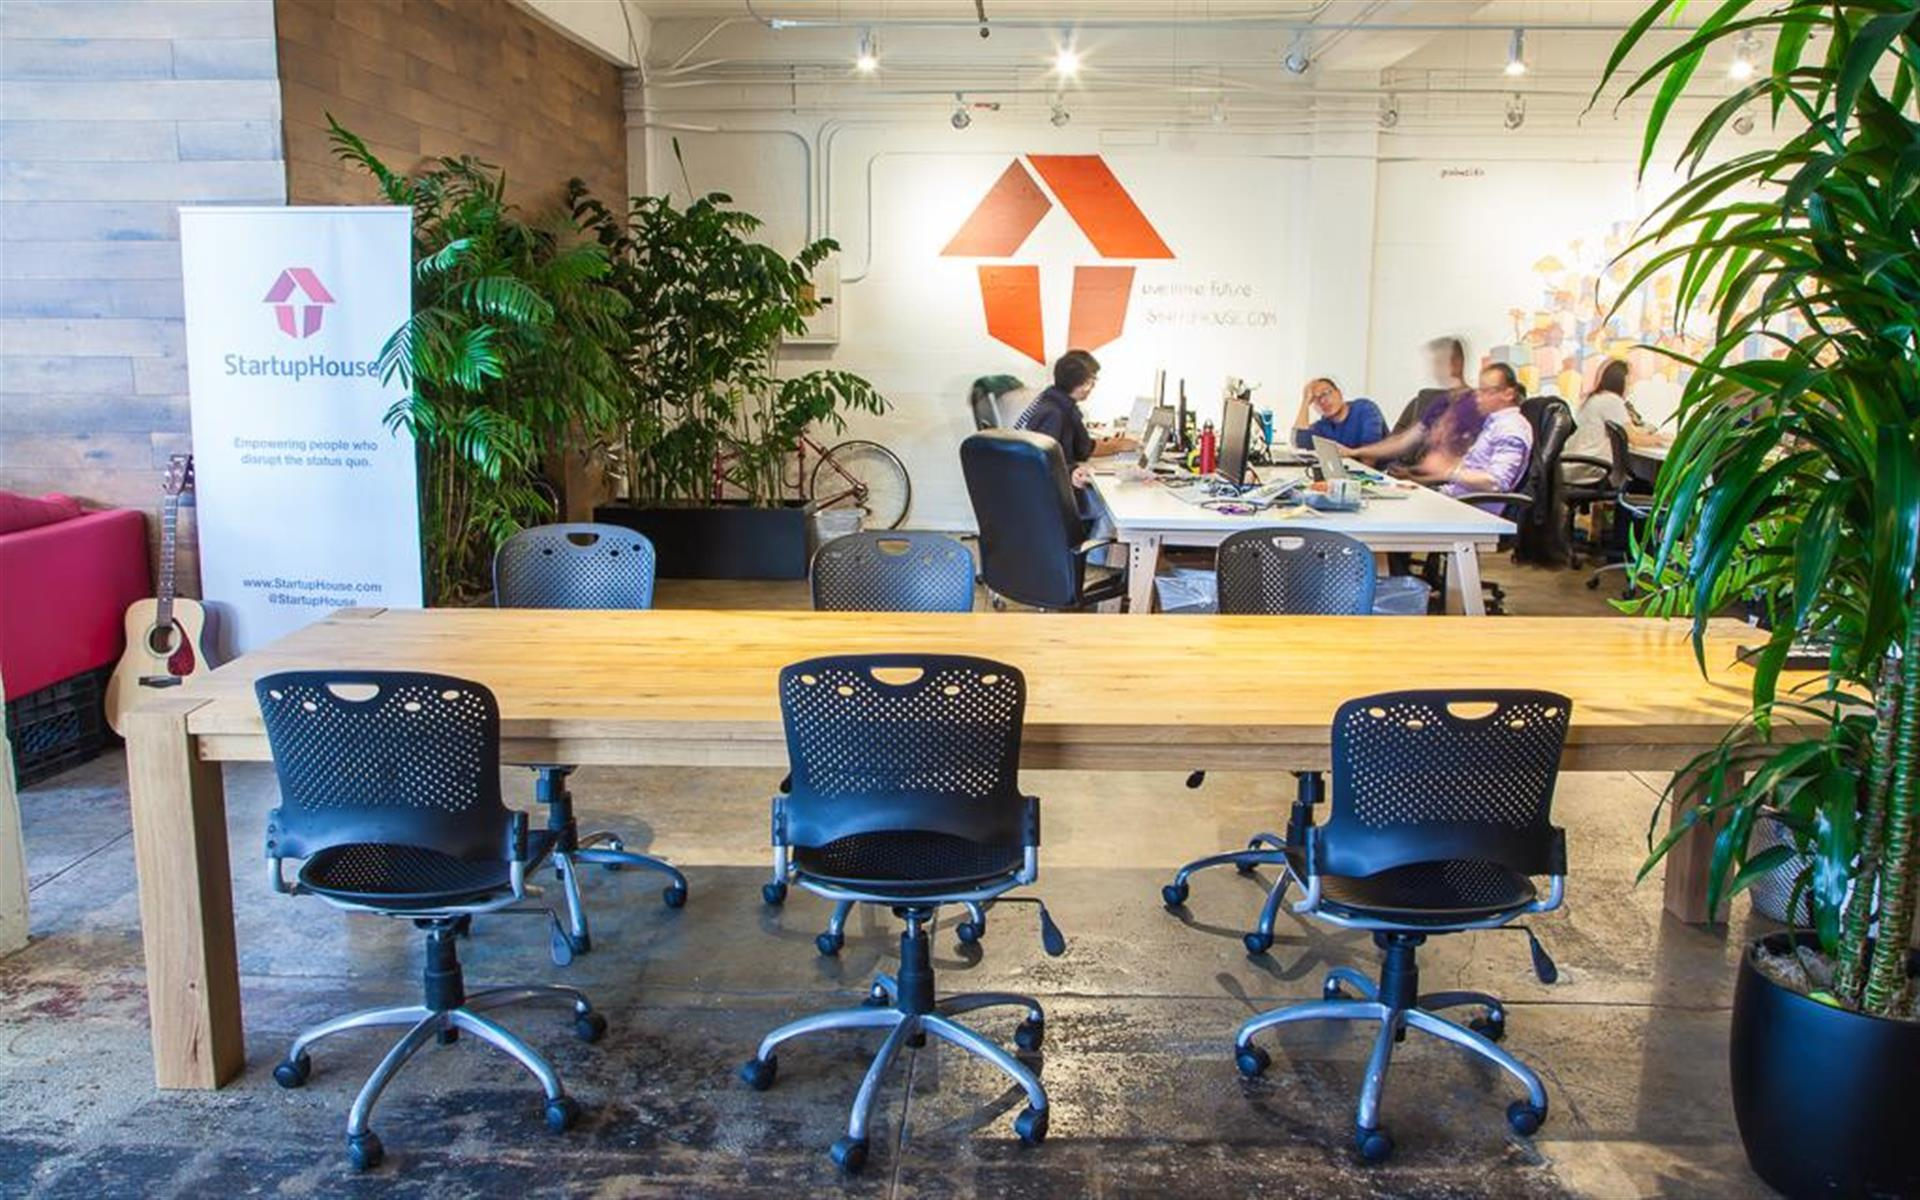 StartupHouse, San Francisco